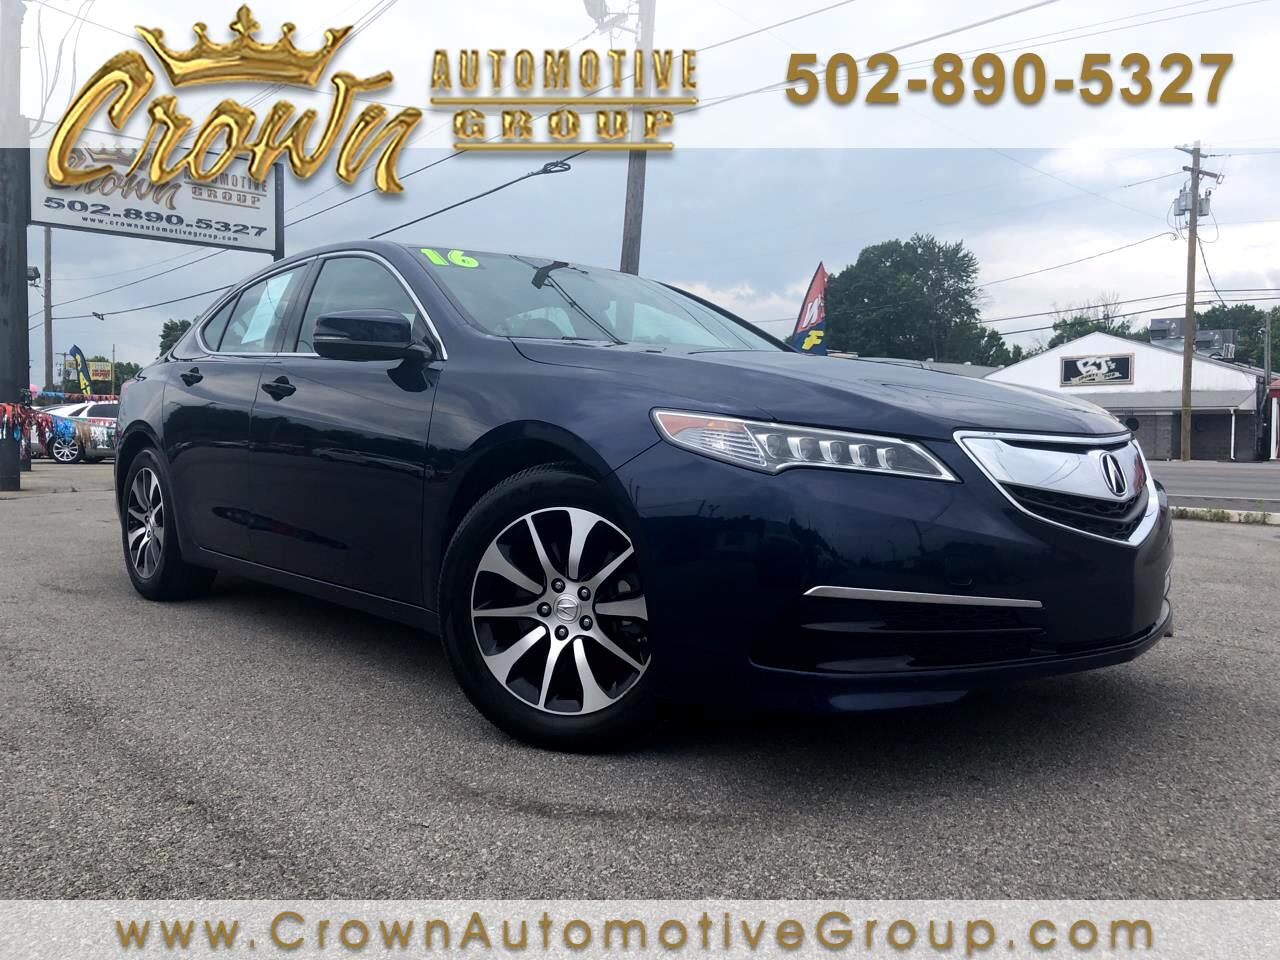 Used Cars Louisville Ky >> Used Cars For Sale Louisville Ky 40258 Crown Automotive Group